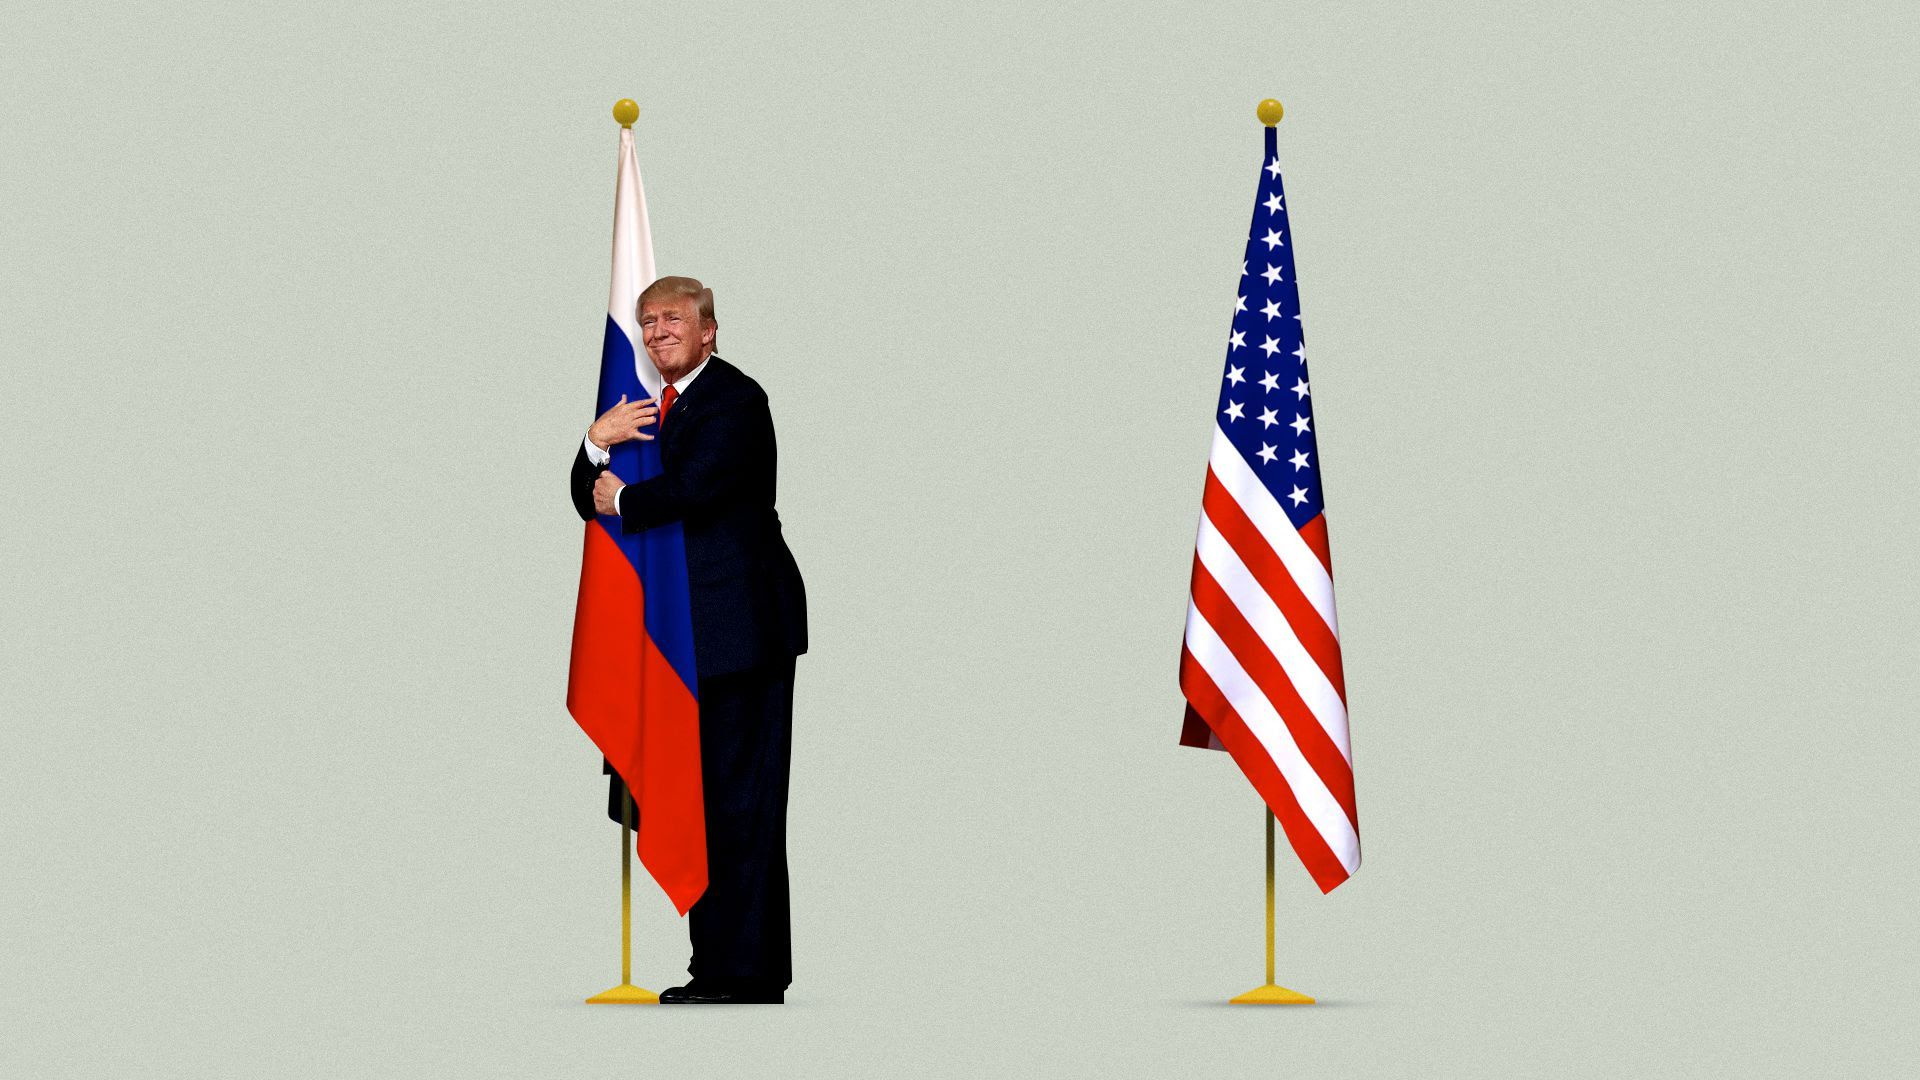 Illustration of Trump hugging a Russian flag while an American flag stands behind him